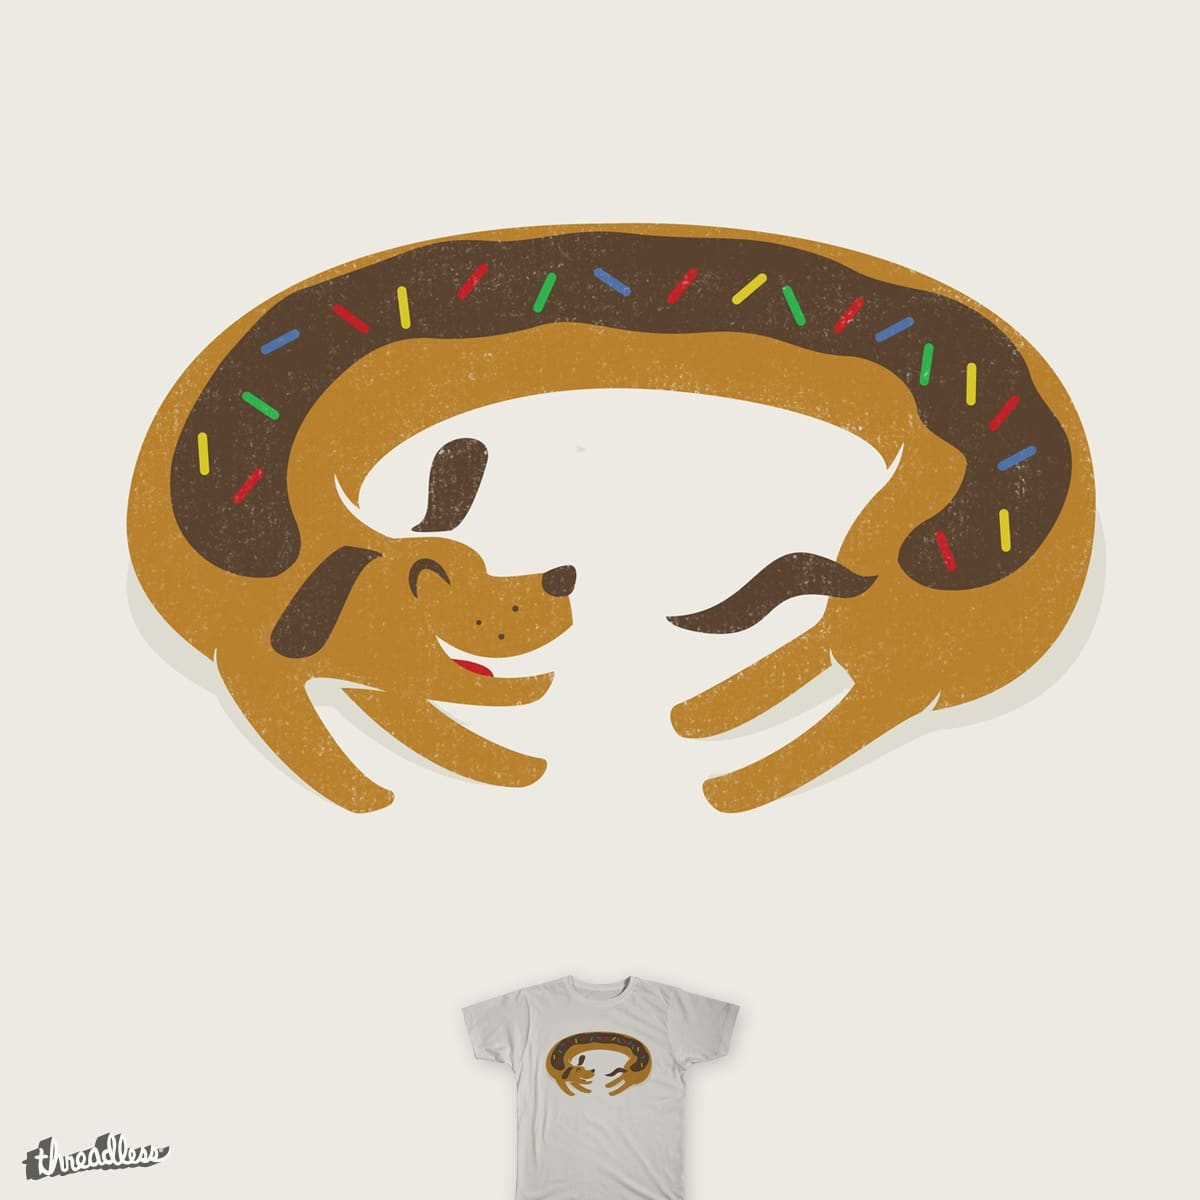 Sprinkled Dognut by murraymullet on Threadless